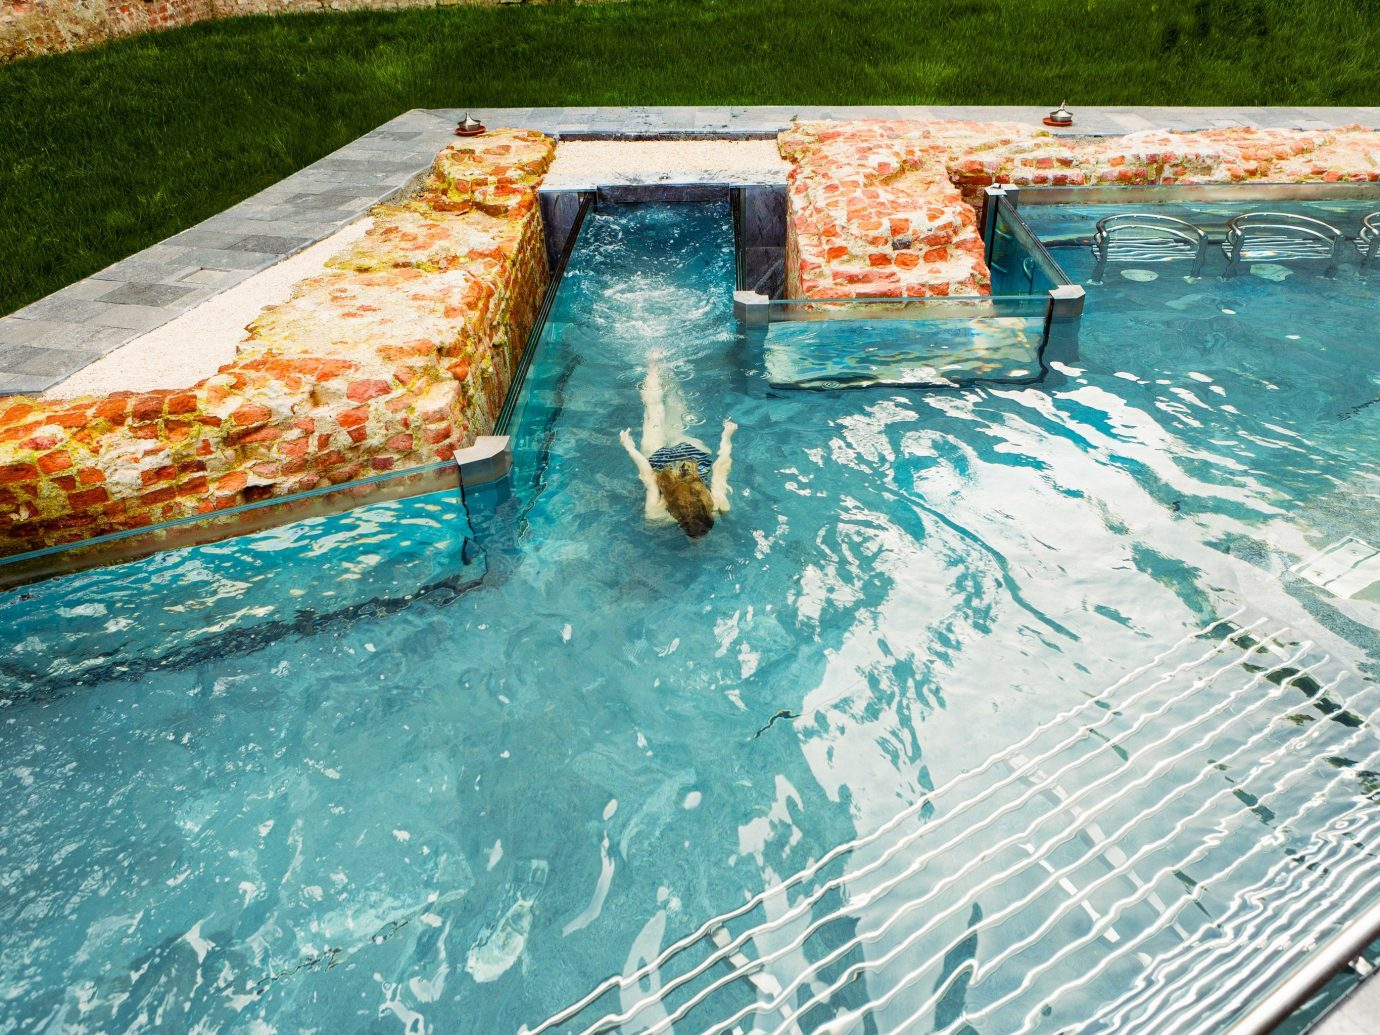 Arts + Culture Italy Milan water swimming pool leisure water feature water resources recreation vacation amenity